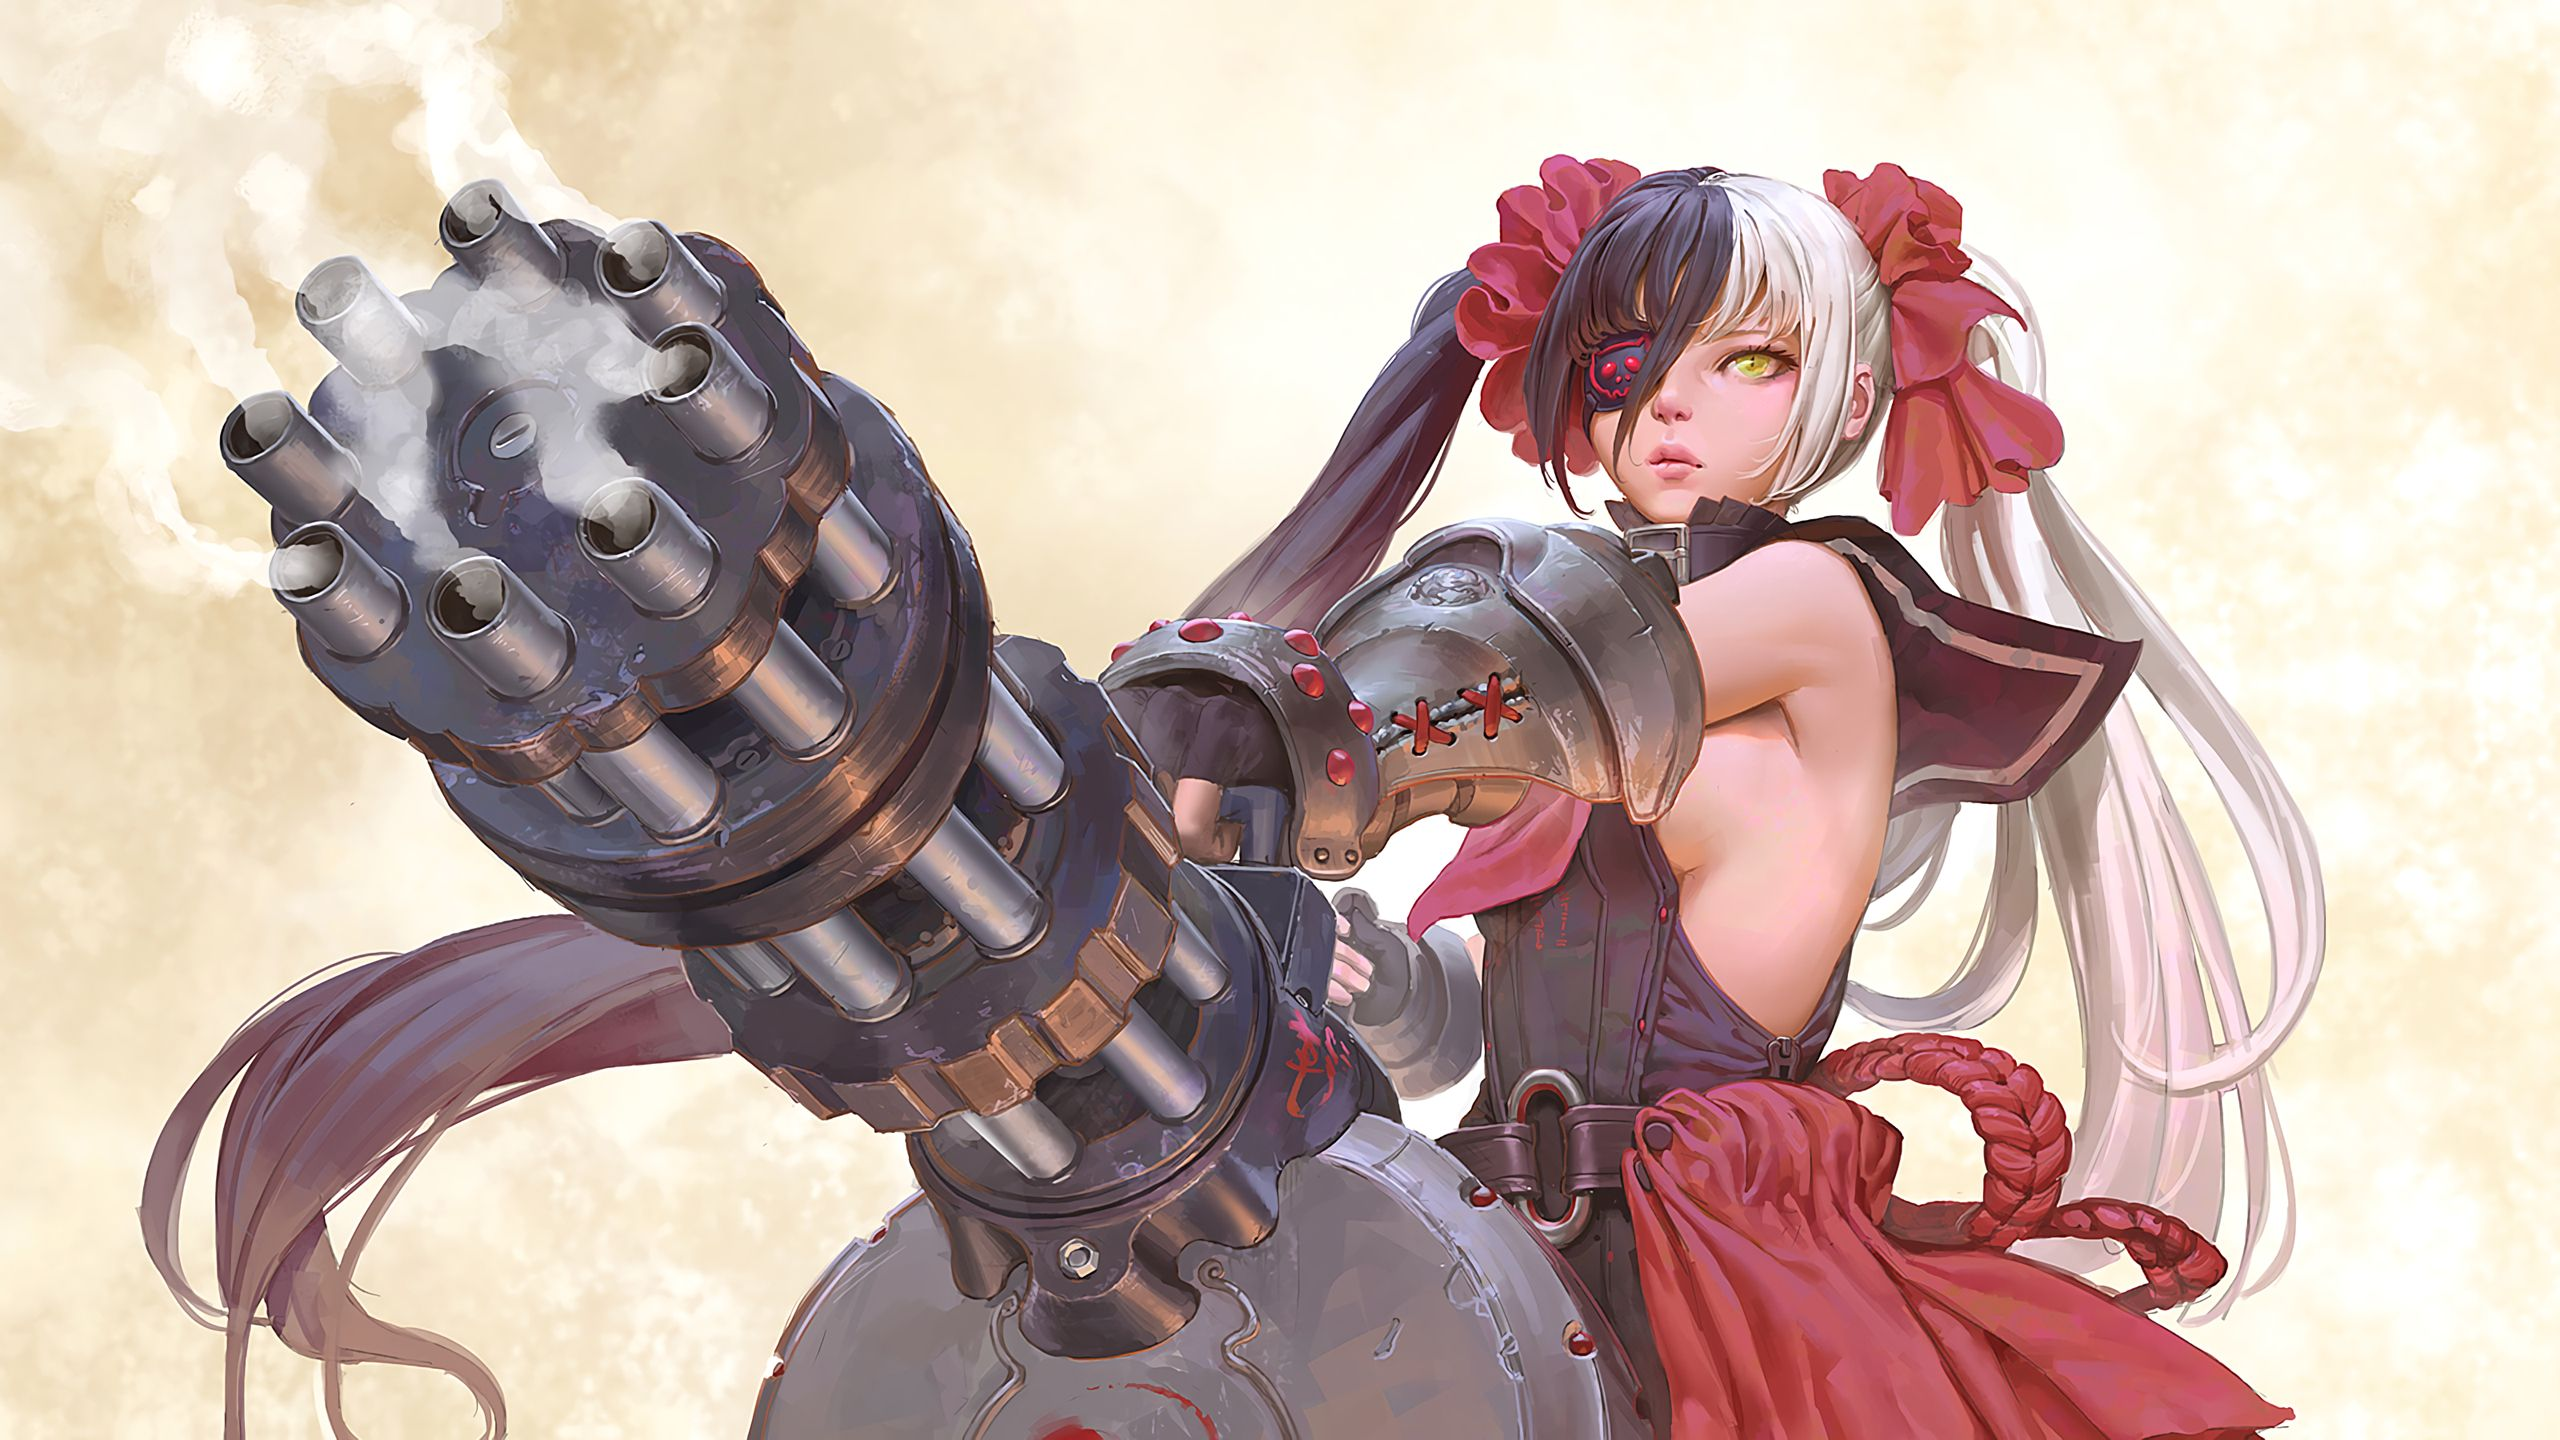 View Download Comment And Rate This 2560x1440 Blade Soul